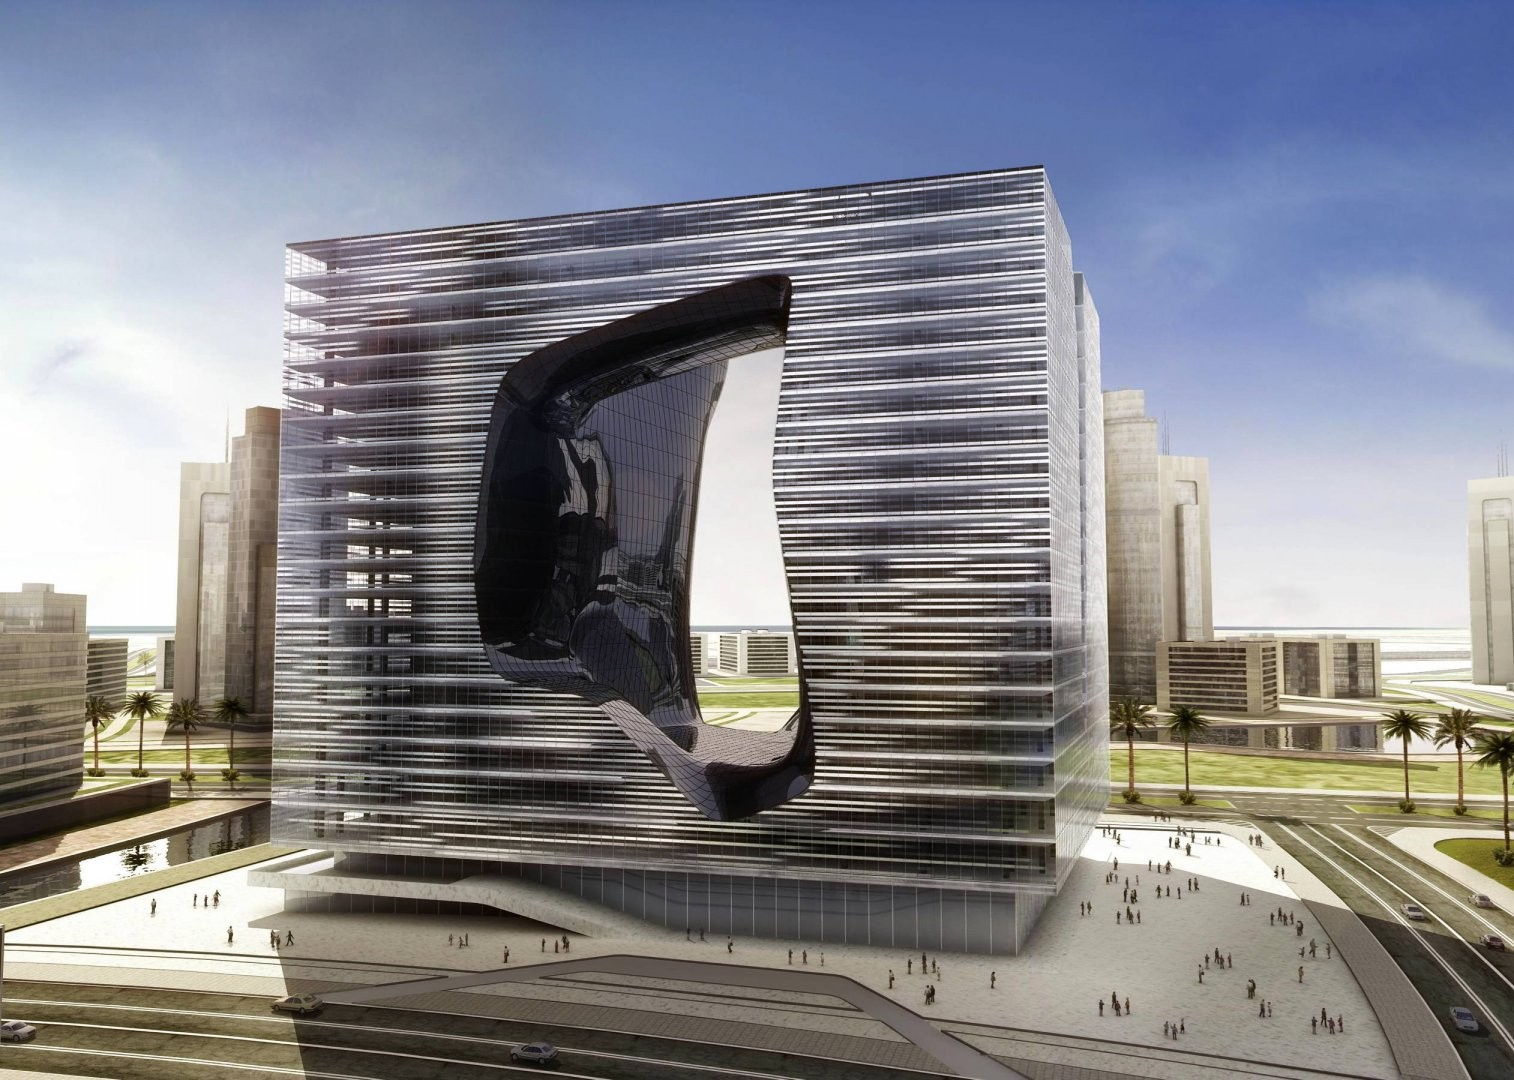 zaha hadid designs new office building and hotel for dubai. Black Bedroom Furniture Sets. Home Design Ideas